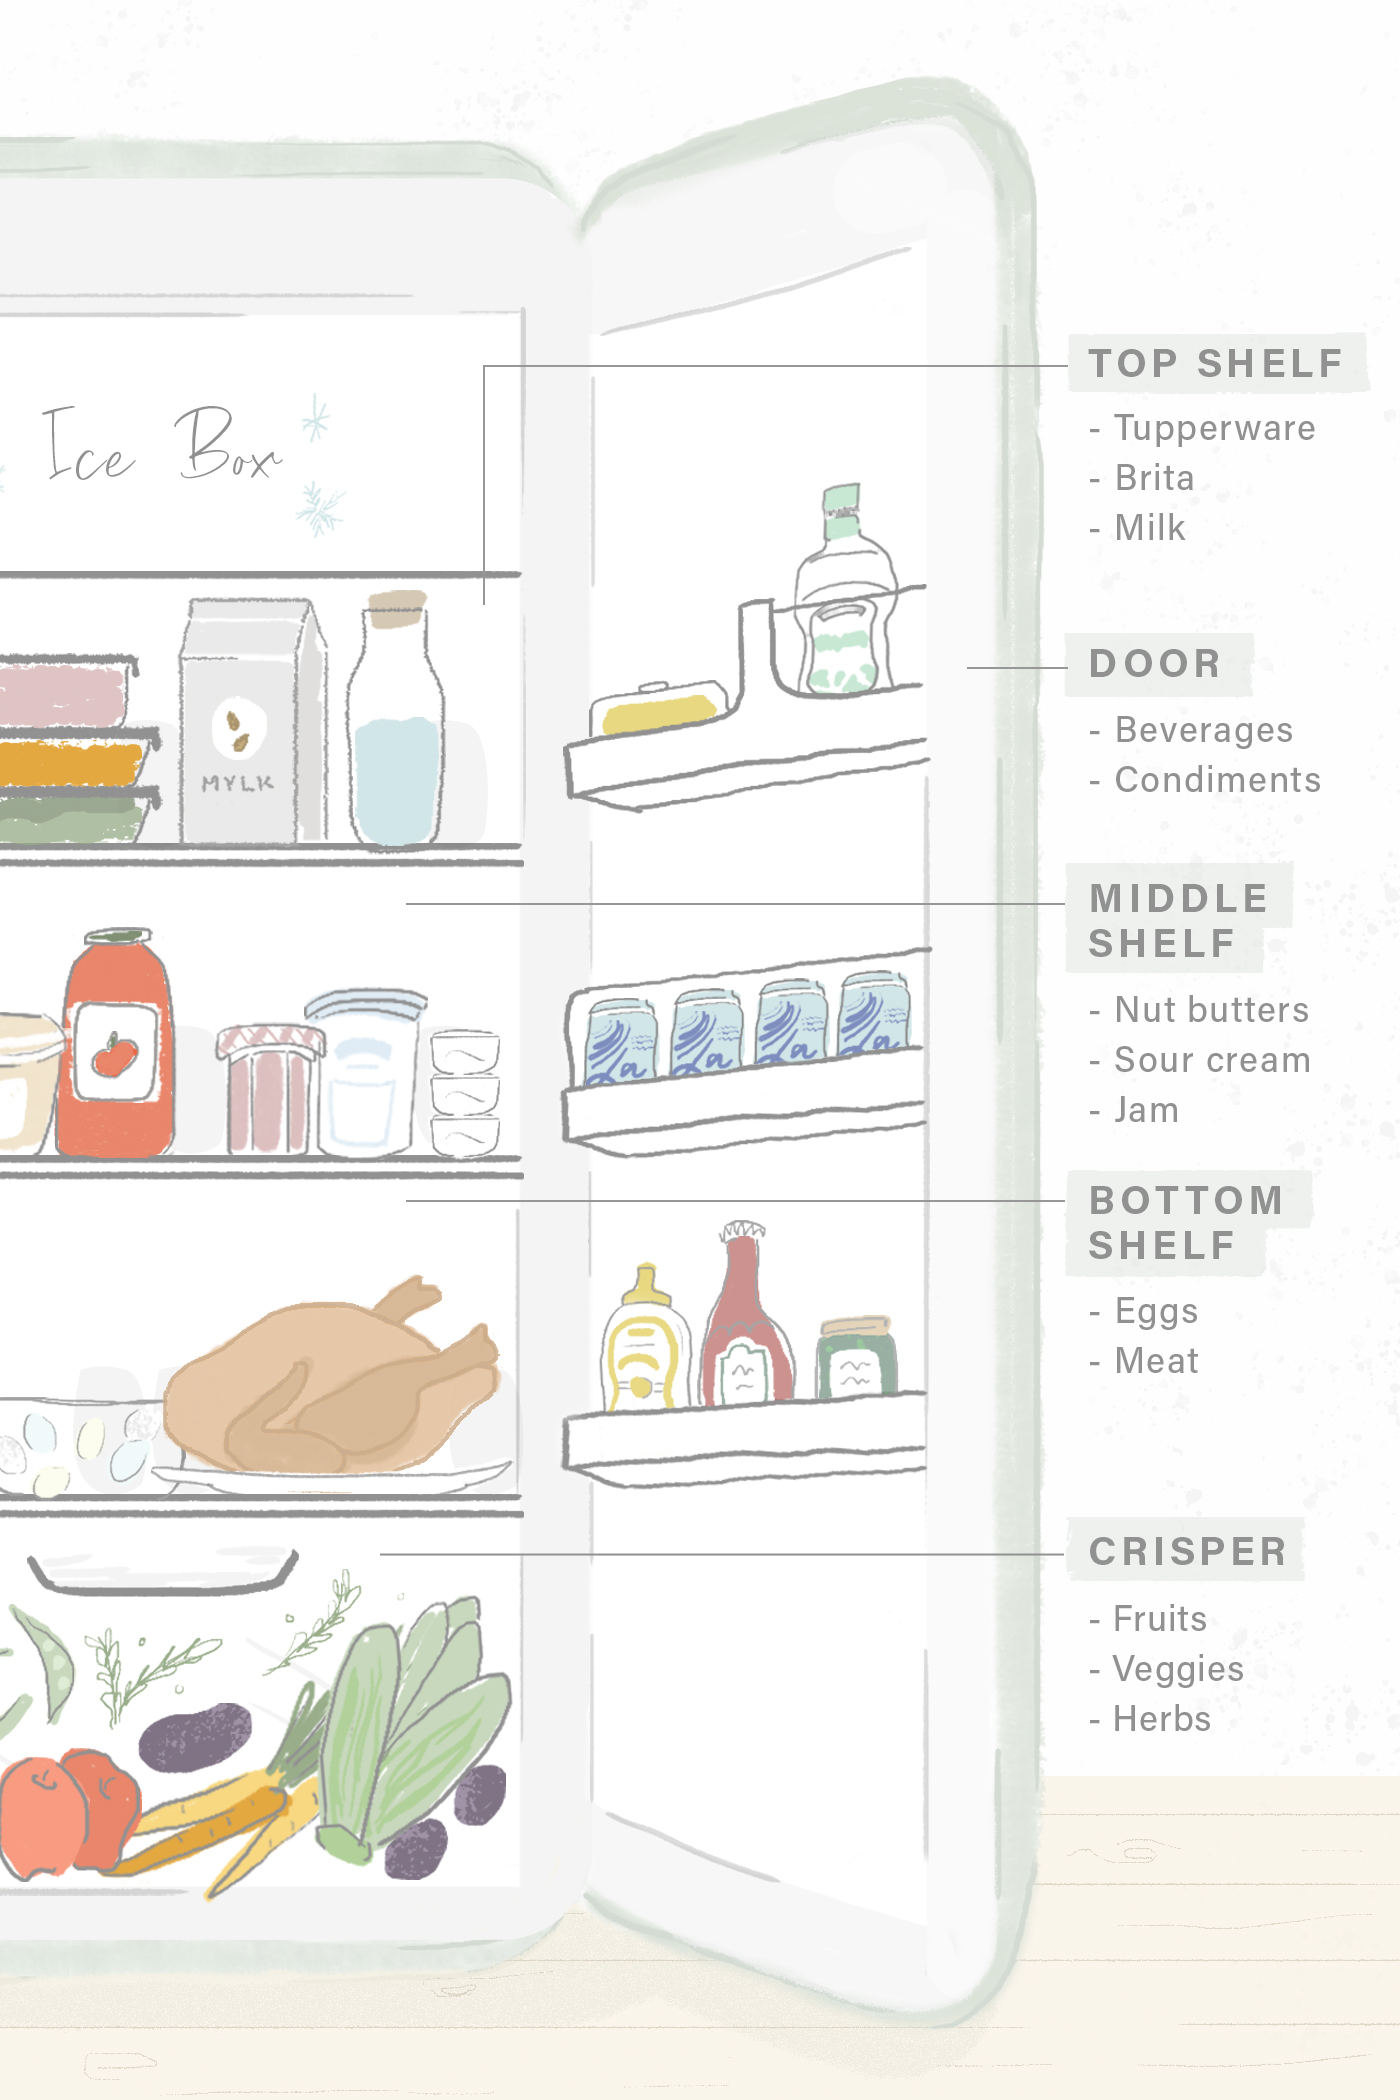 Illustration for a story on how to organize your fridge